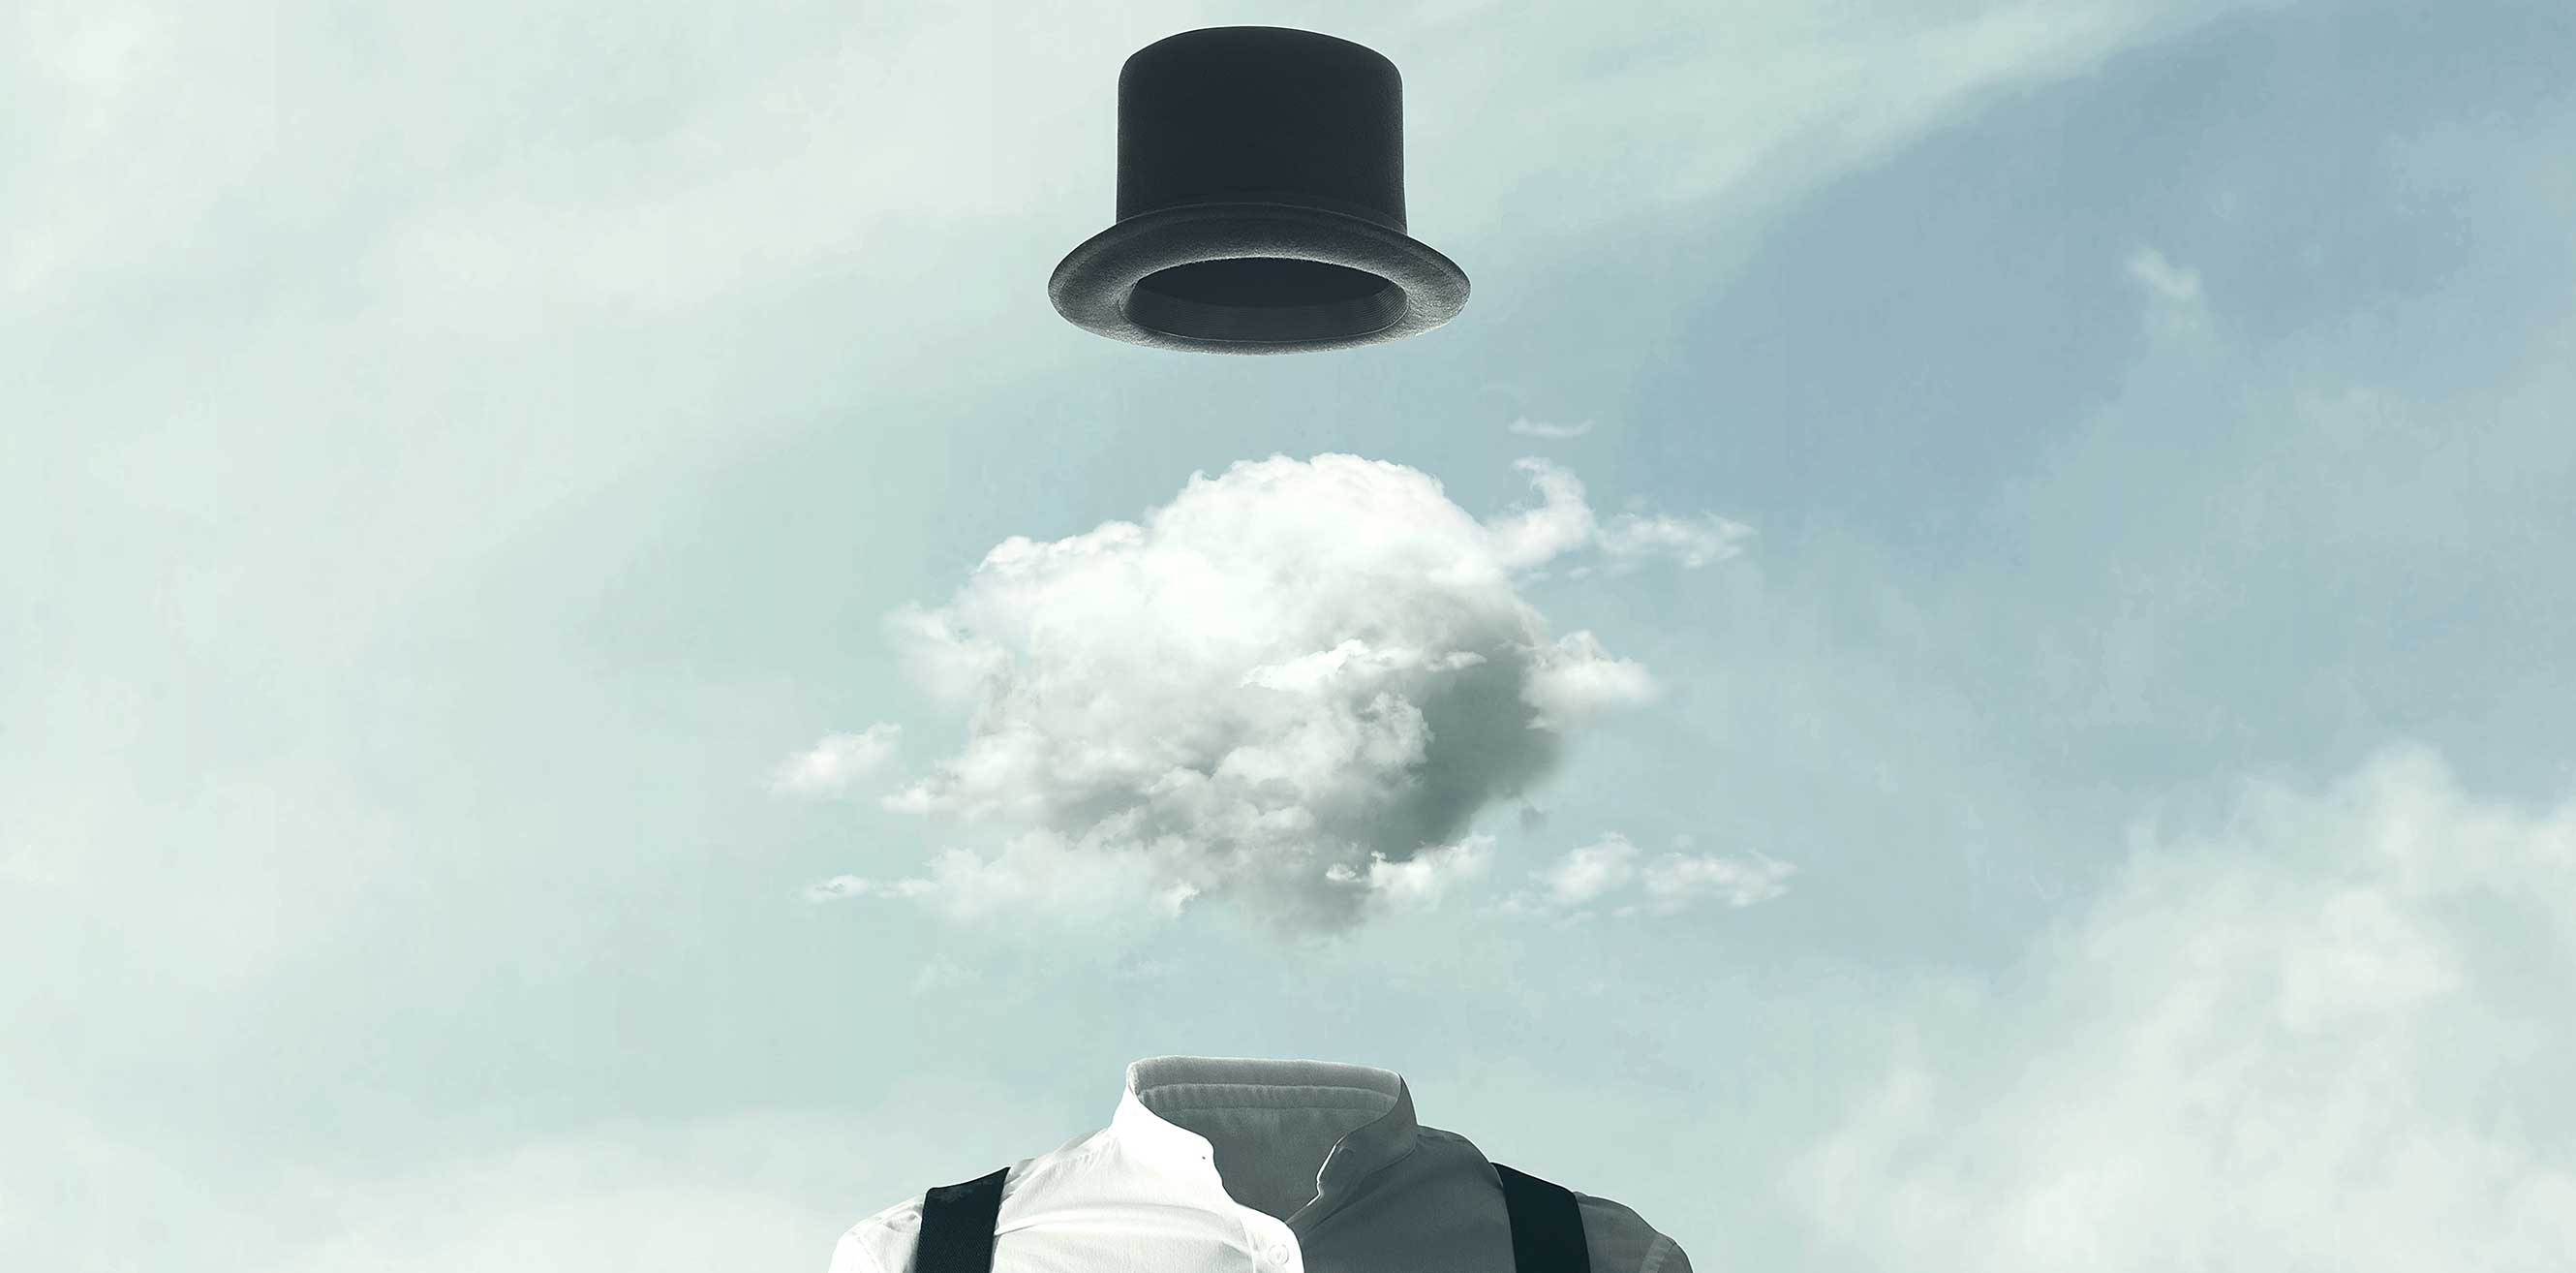 Surreal man with his head in the clouds